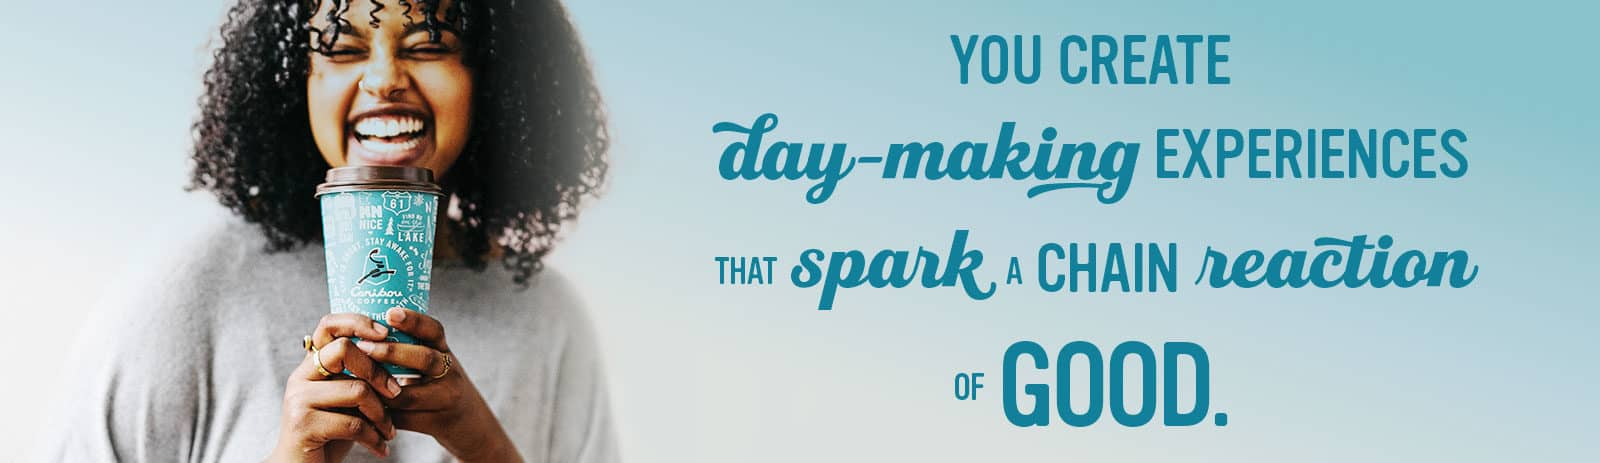 You Create Day-Making Experiences That Spark a Chain Reaction of Good.